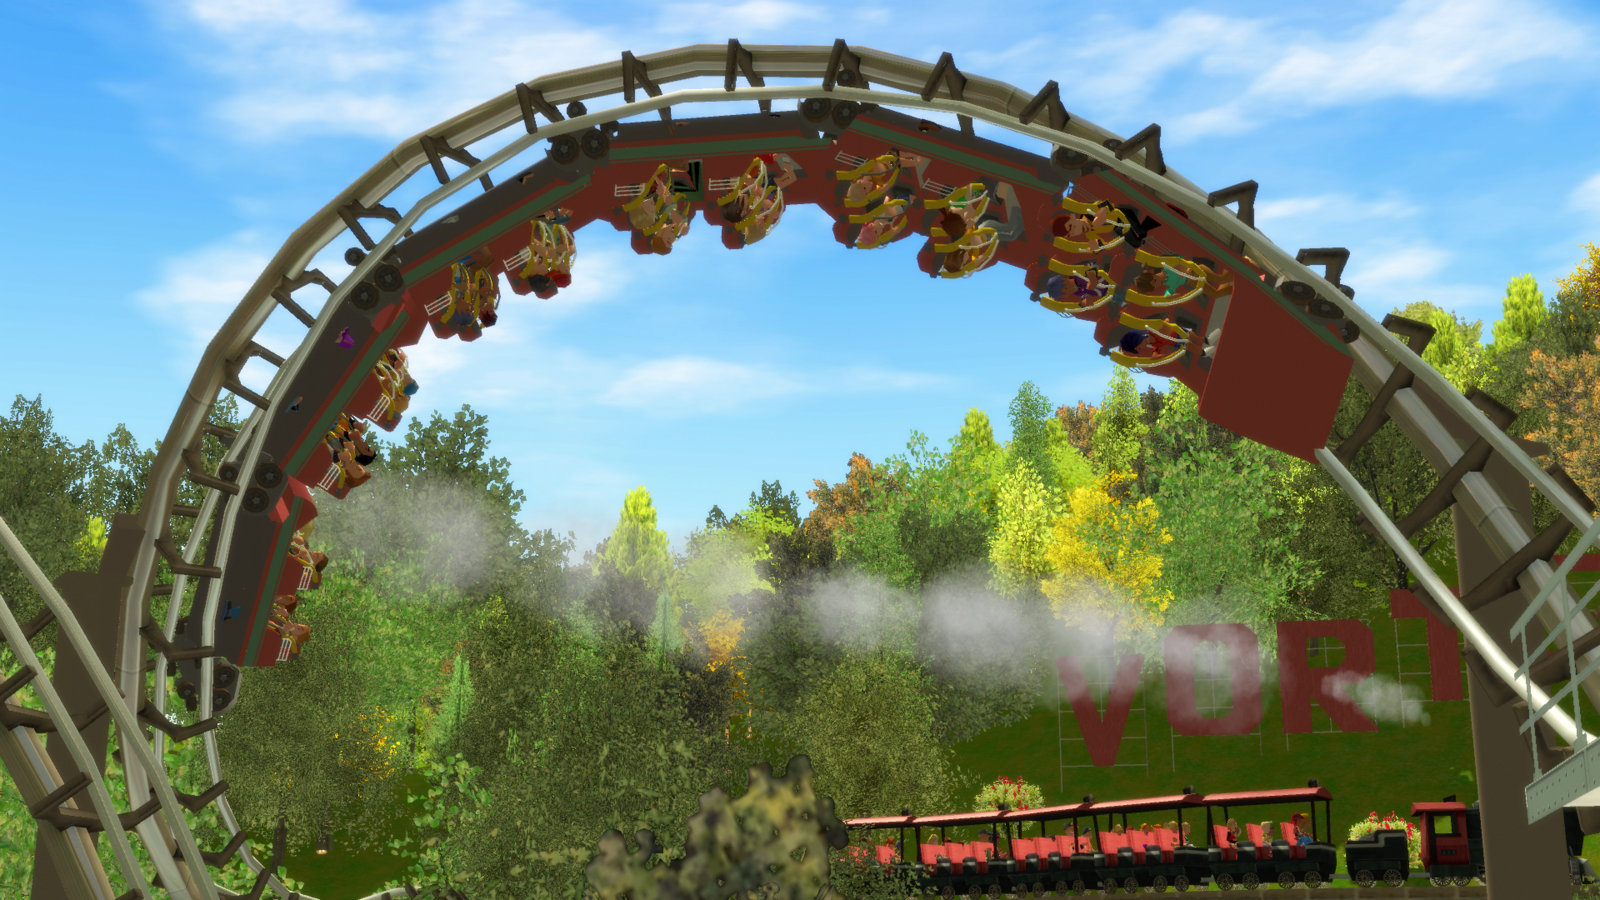 Virginia Vortex Arrow RCT3 Coaster - Coaster101